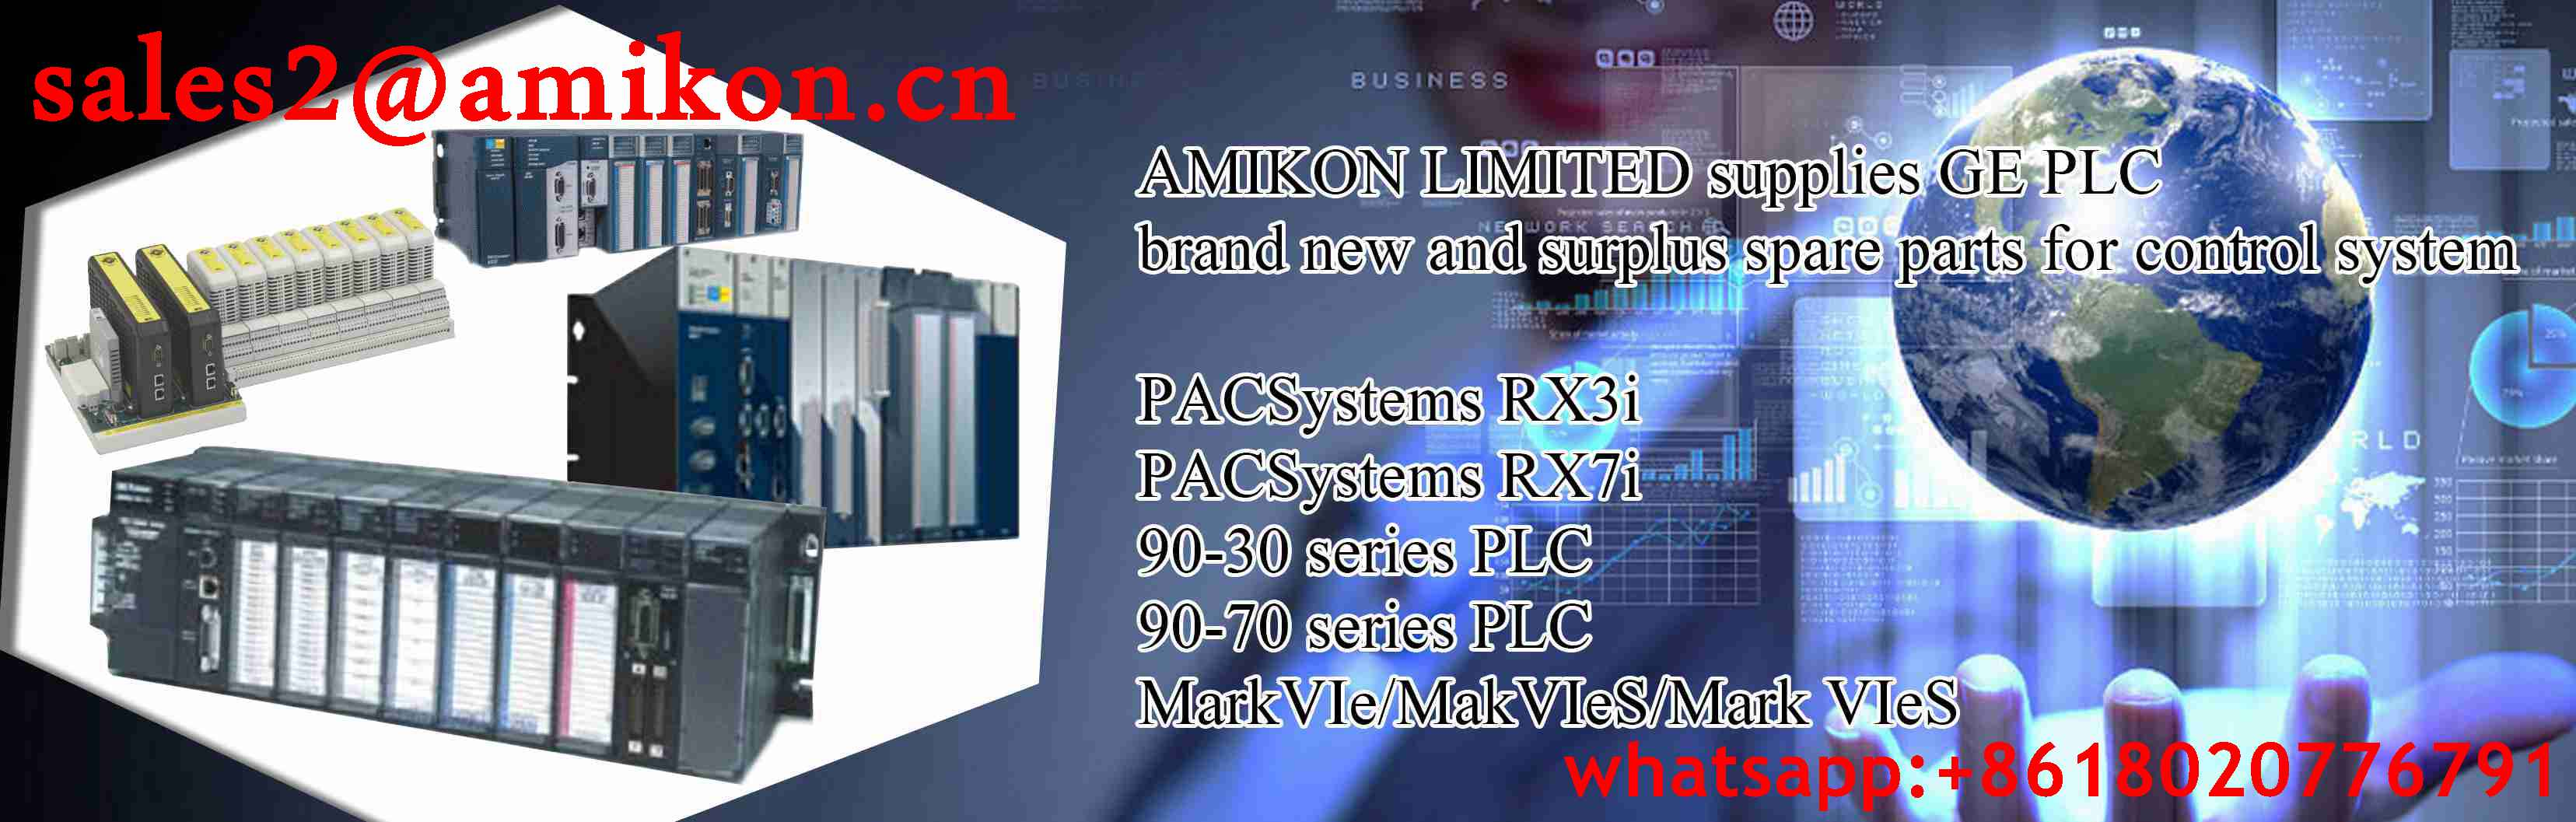 IC697CPM790 GE General Electric sales2@amikon.cn PLC DCS Industry Control System Module